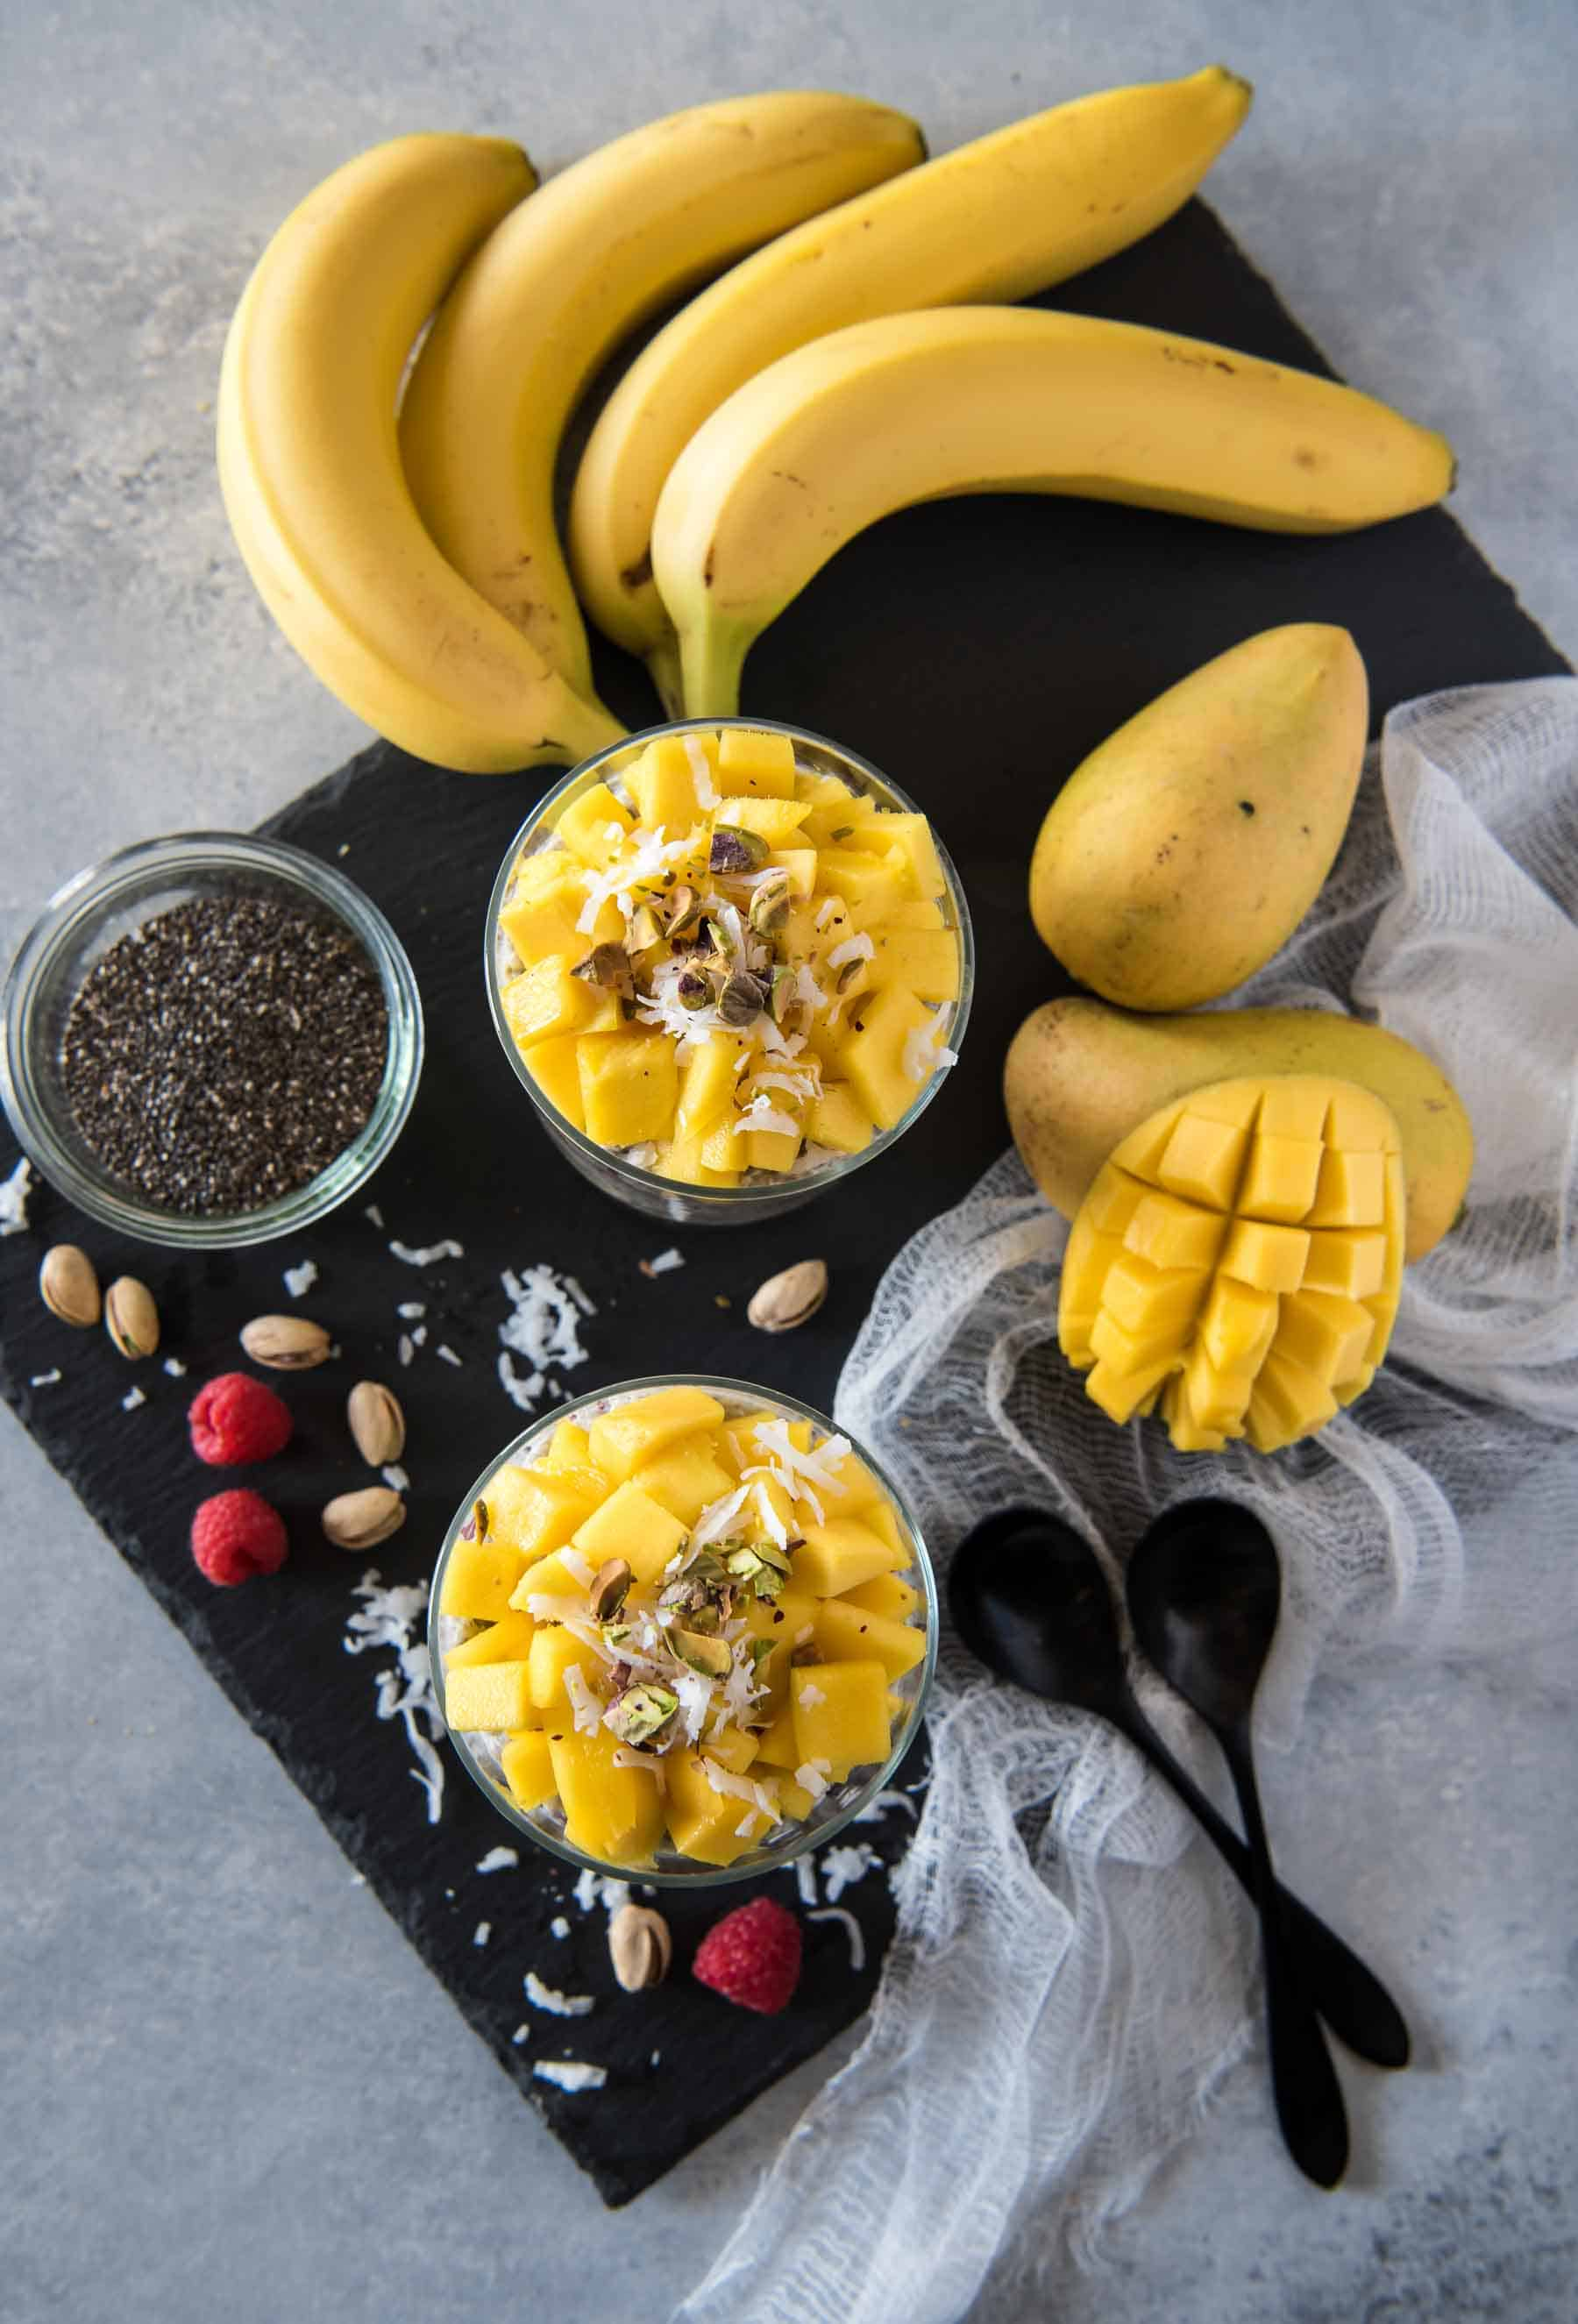 Go healthy with the most surprising dessert! This vegan, paleo, gluten-free Coconut Mango Chia Pudding Parfait is super simple to throw together and will satisfy even the biggest sweet tooth!